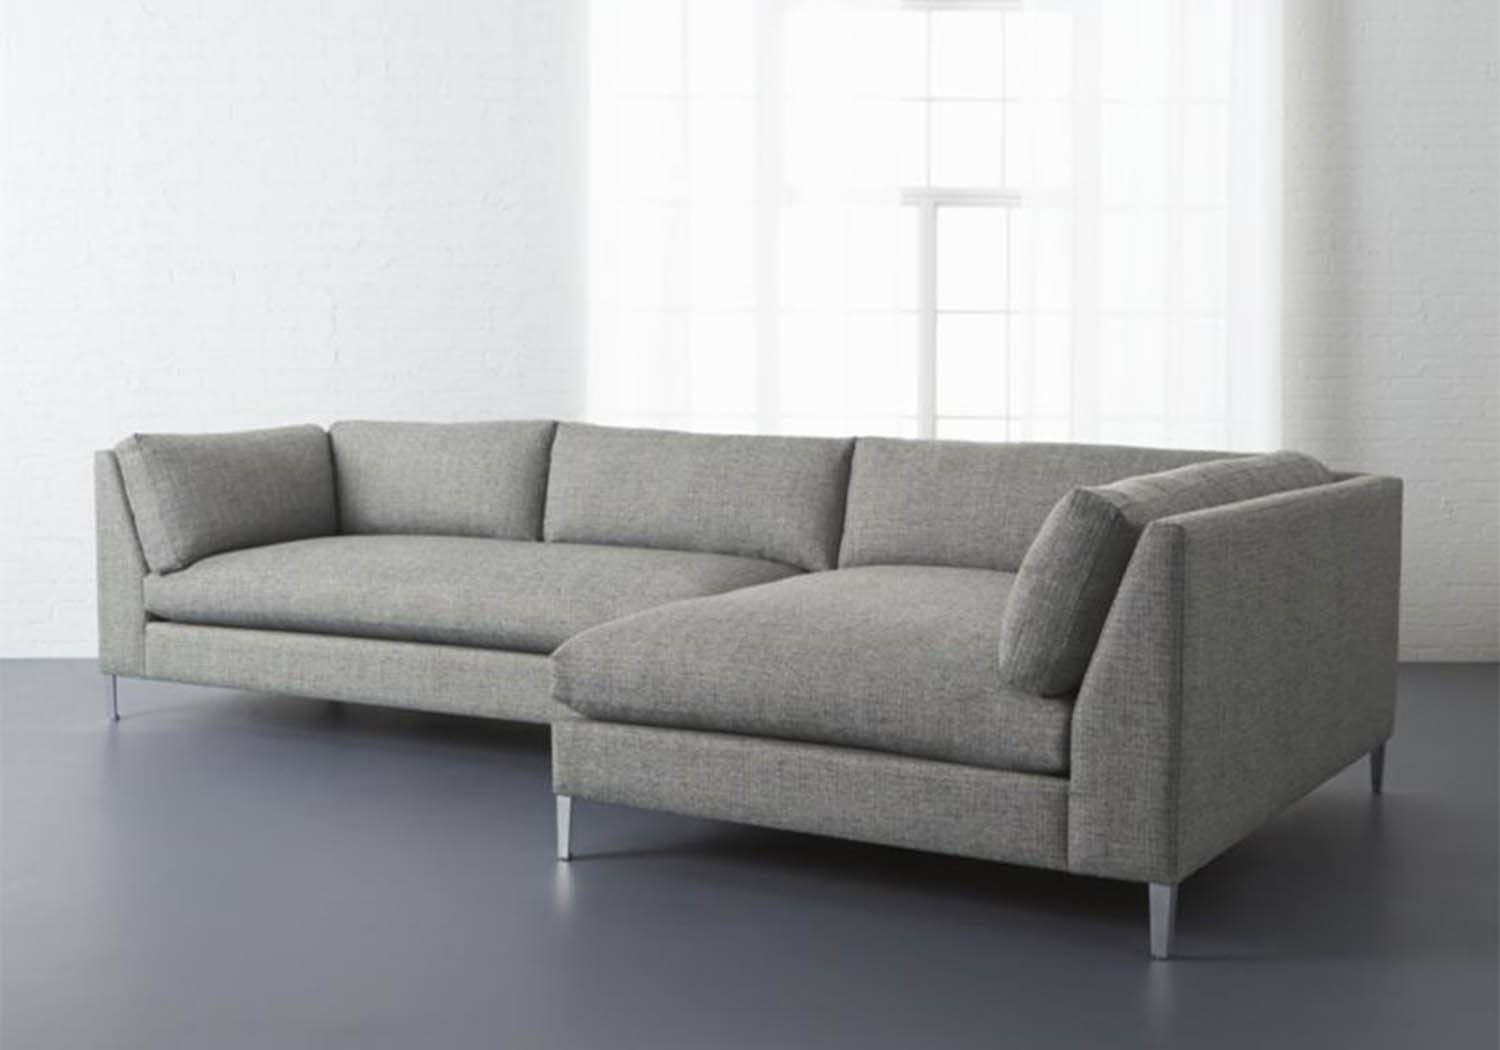 Sofas Under 600 Dollars Hmmi Pertaining To Sectional Image 29 Of